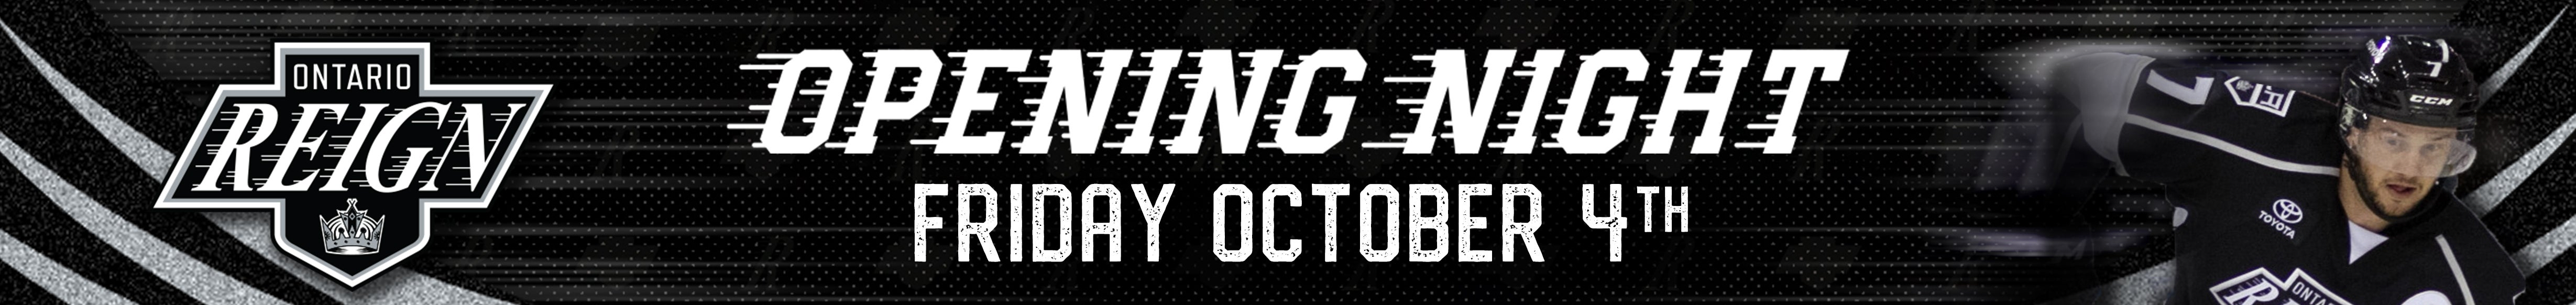 Ontario Reign - AHL Affiliate of the LA Kings :: Ontario Reign